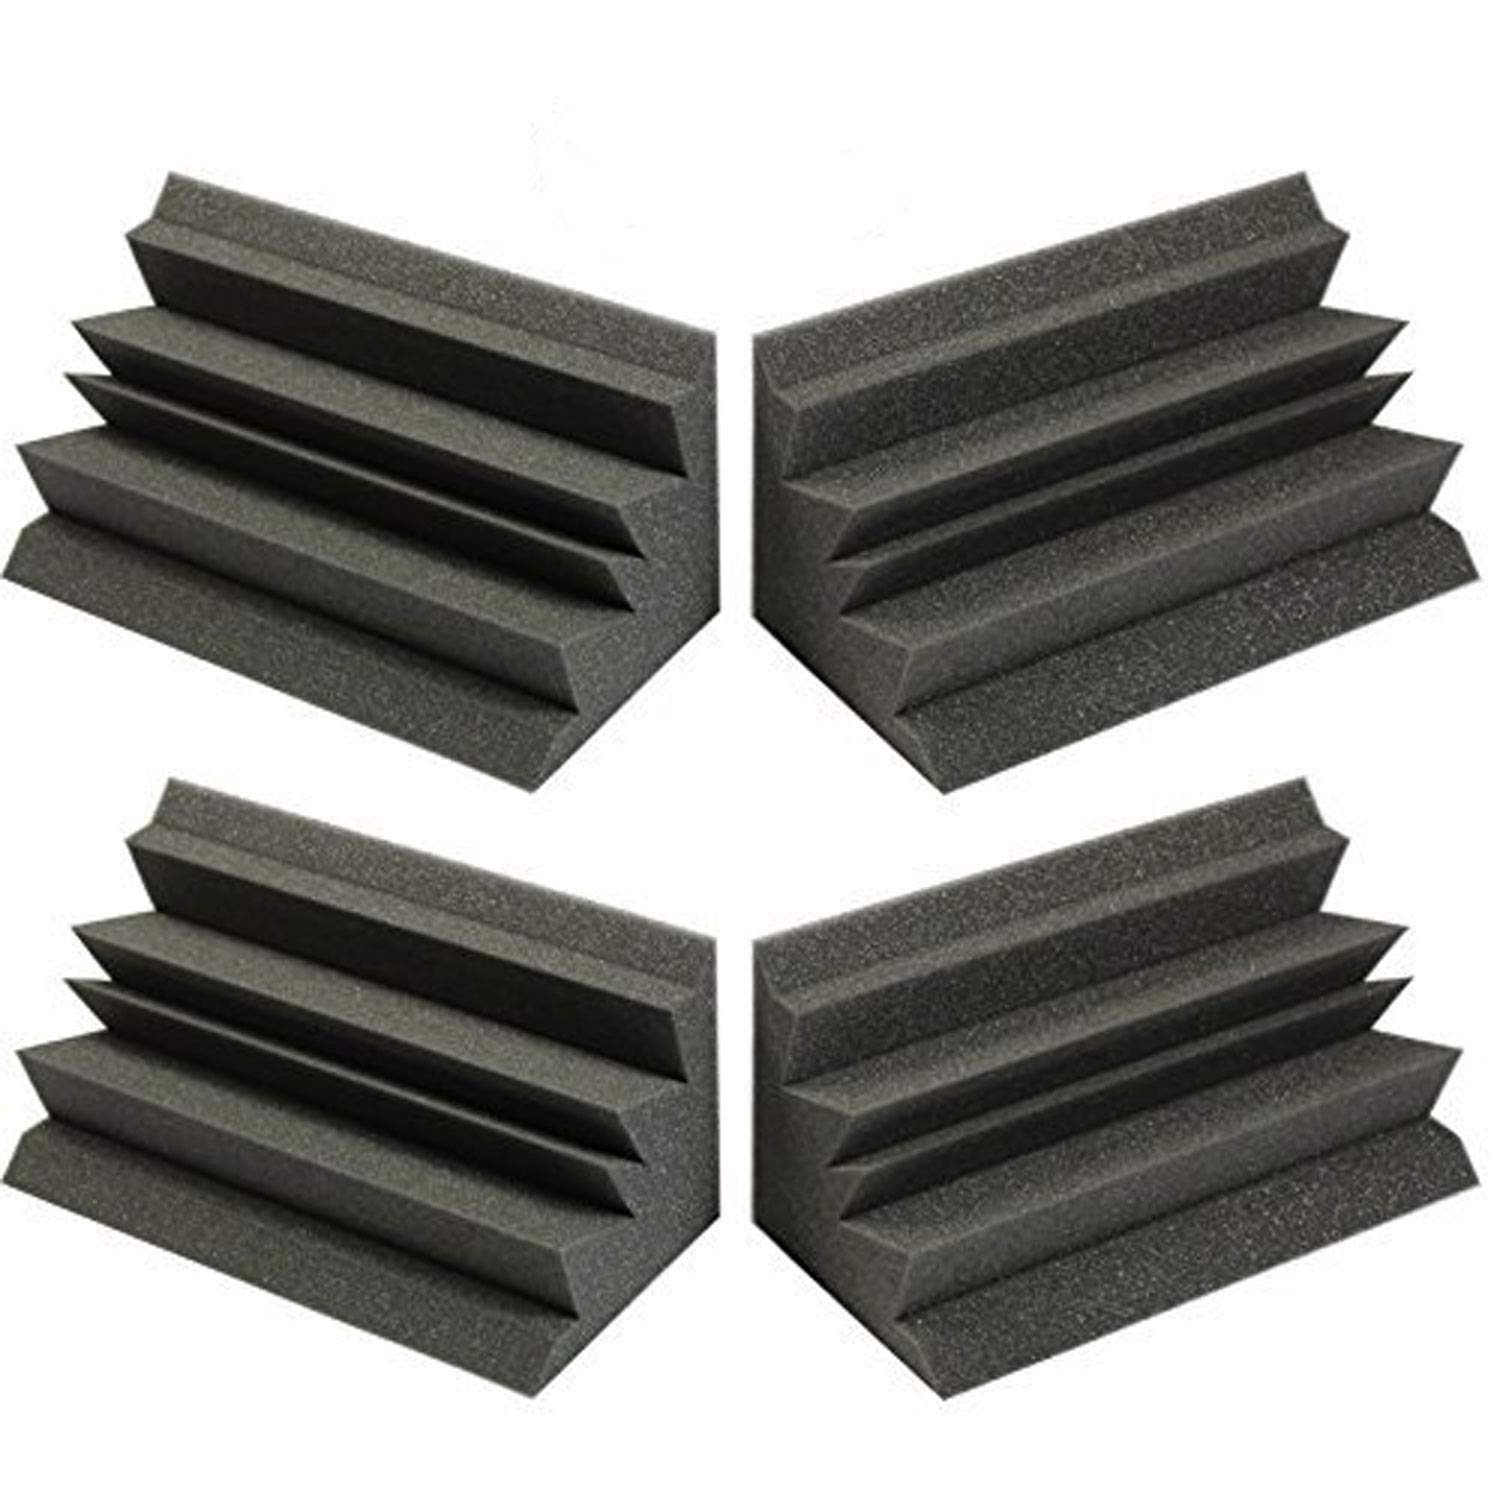 4 PACK -Acoustic Foam Bass Trap Studio Corner Wall 12 X 8 X 6- (Set of 4) Mybecca 4336353381